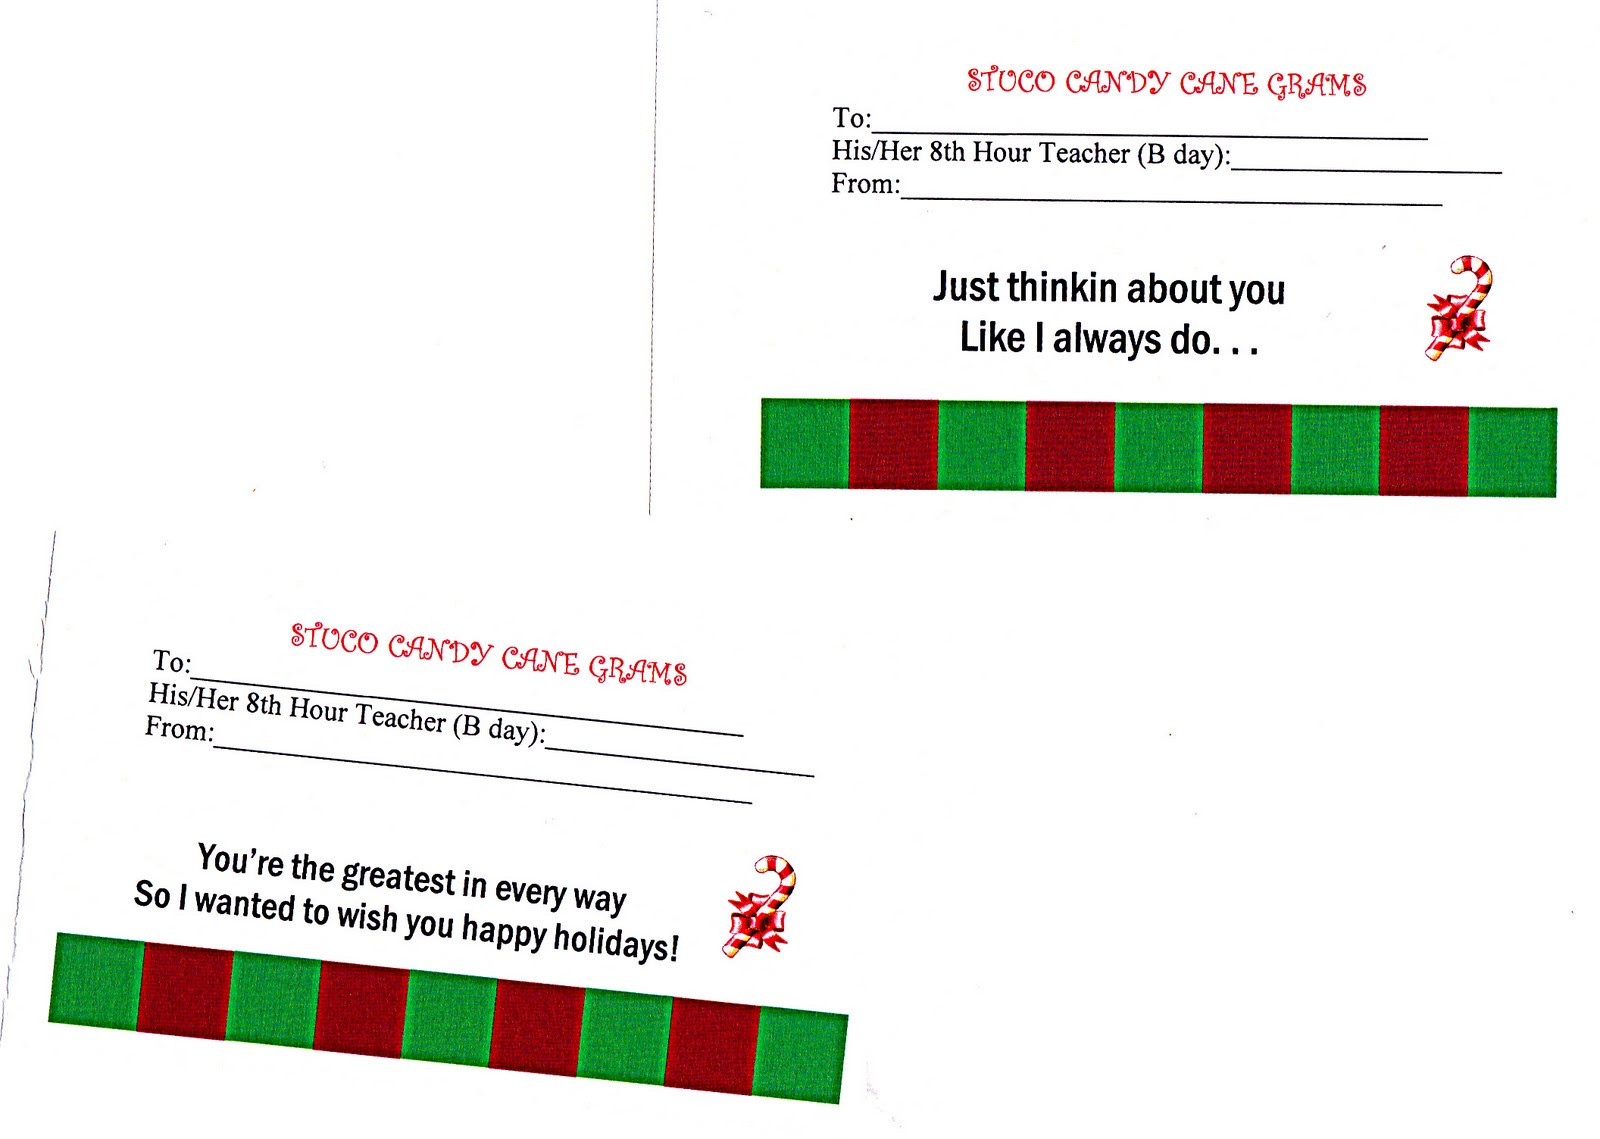 Christmas Candy Gram Template  writingmagic26 Candy Cane Grams